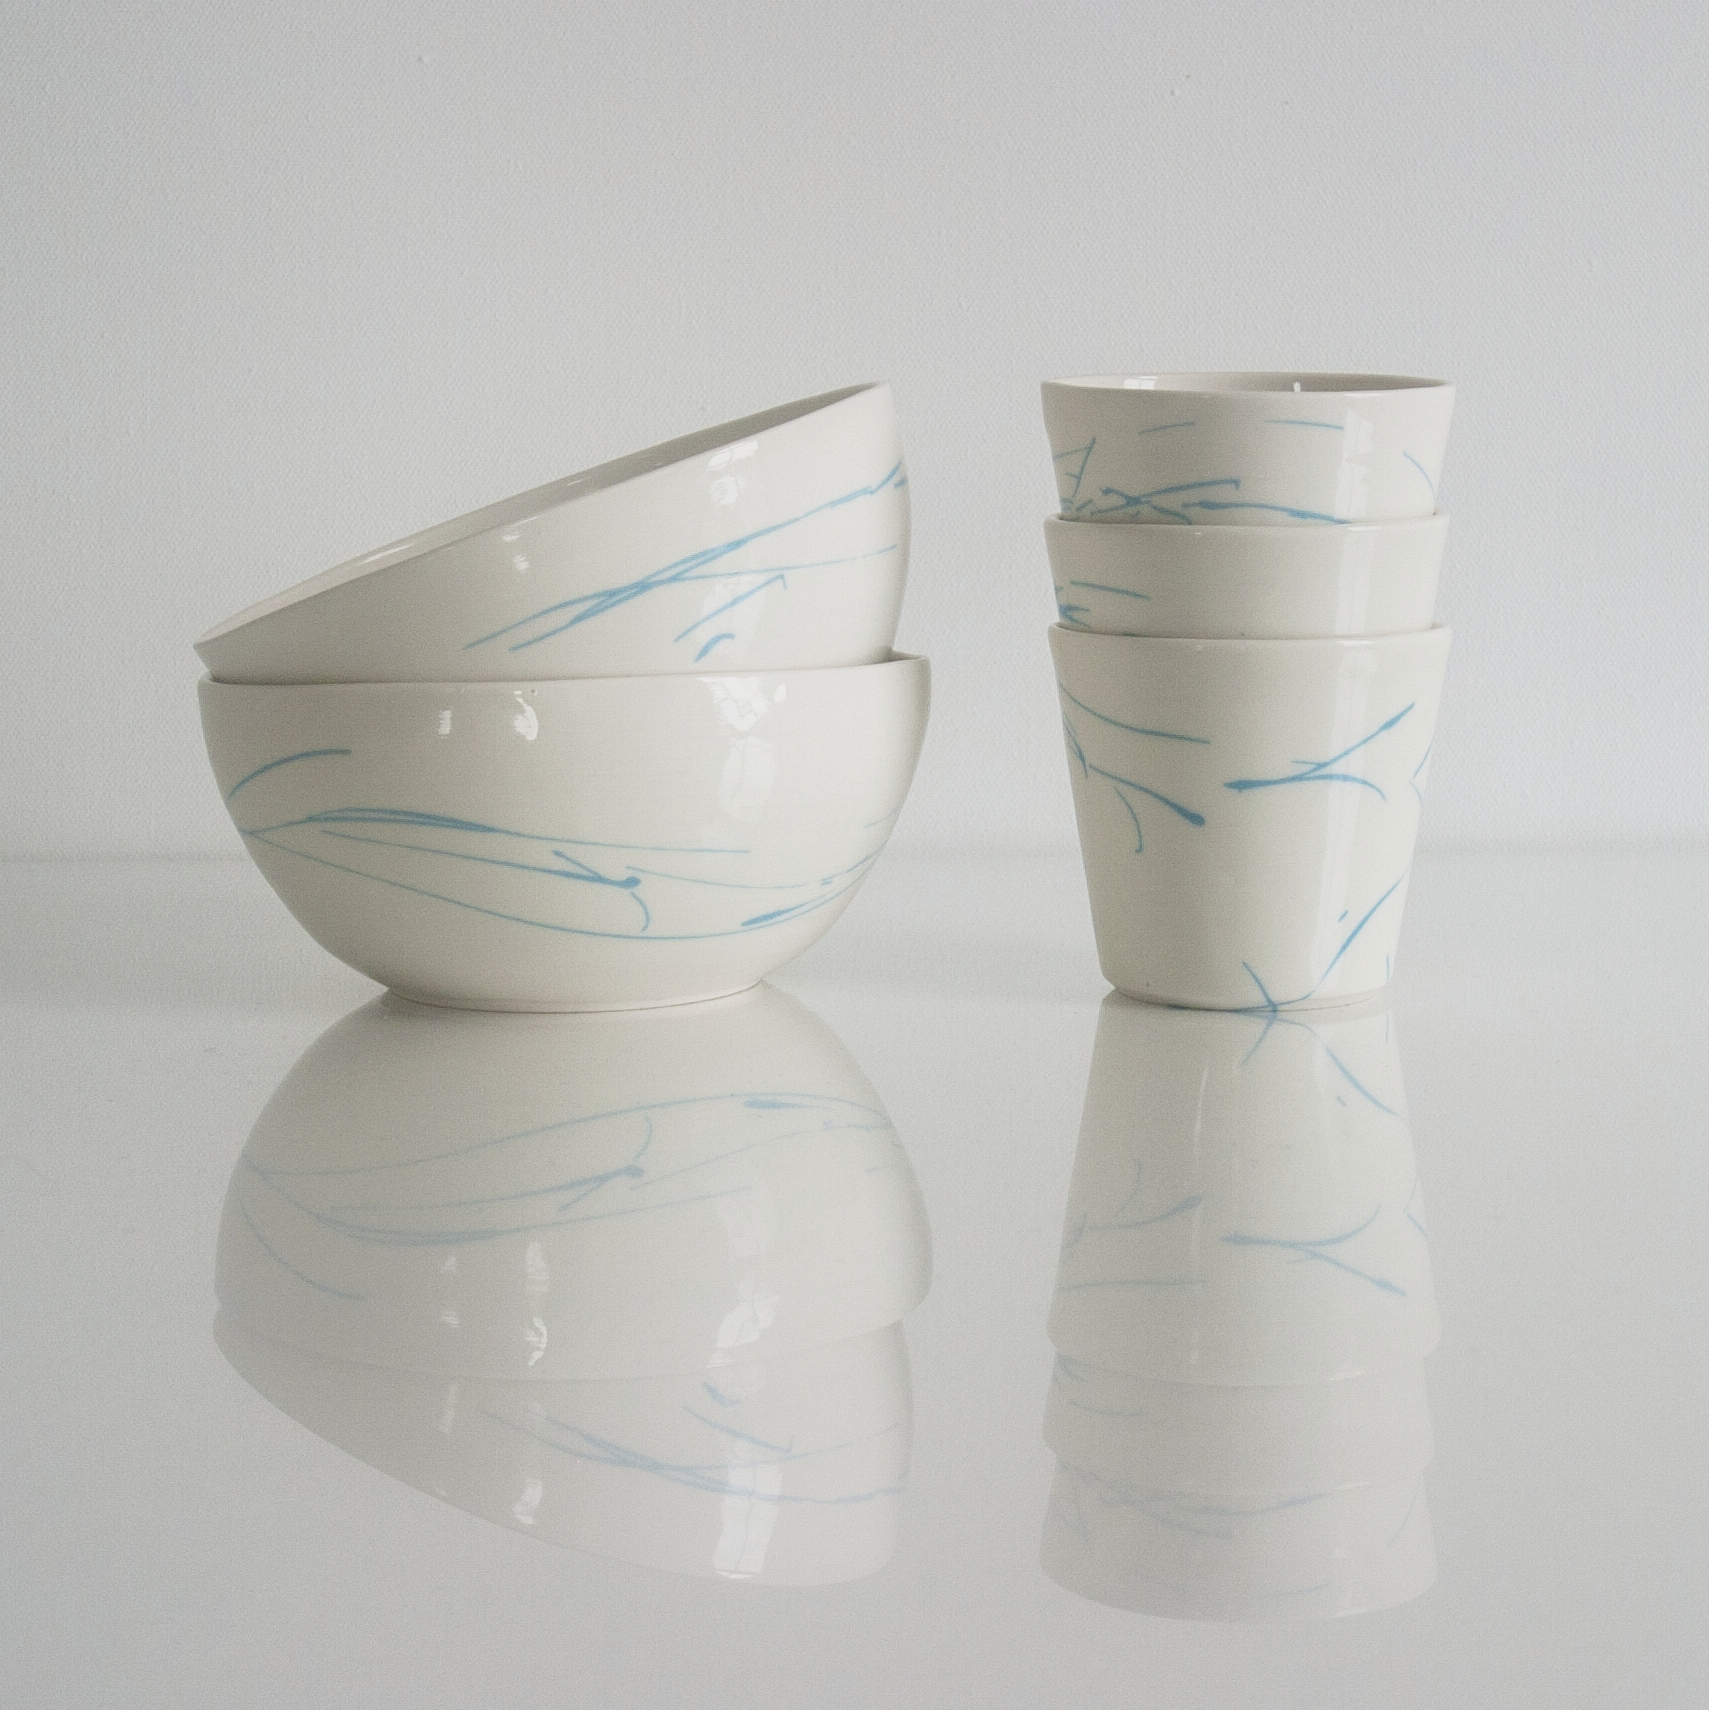 New pottery - Handmade porcelain bowls and coffee beakers